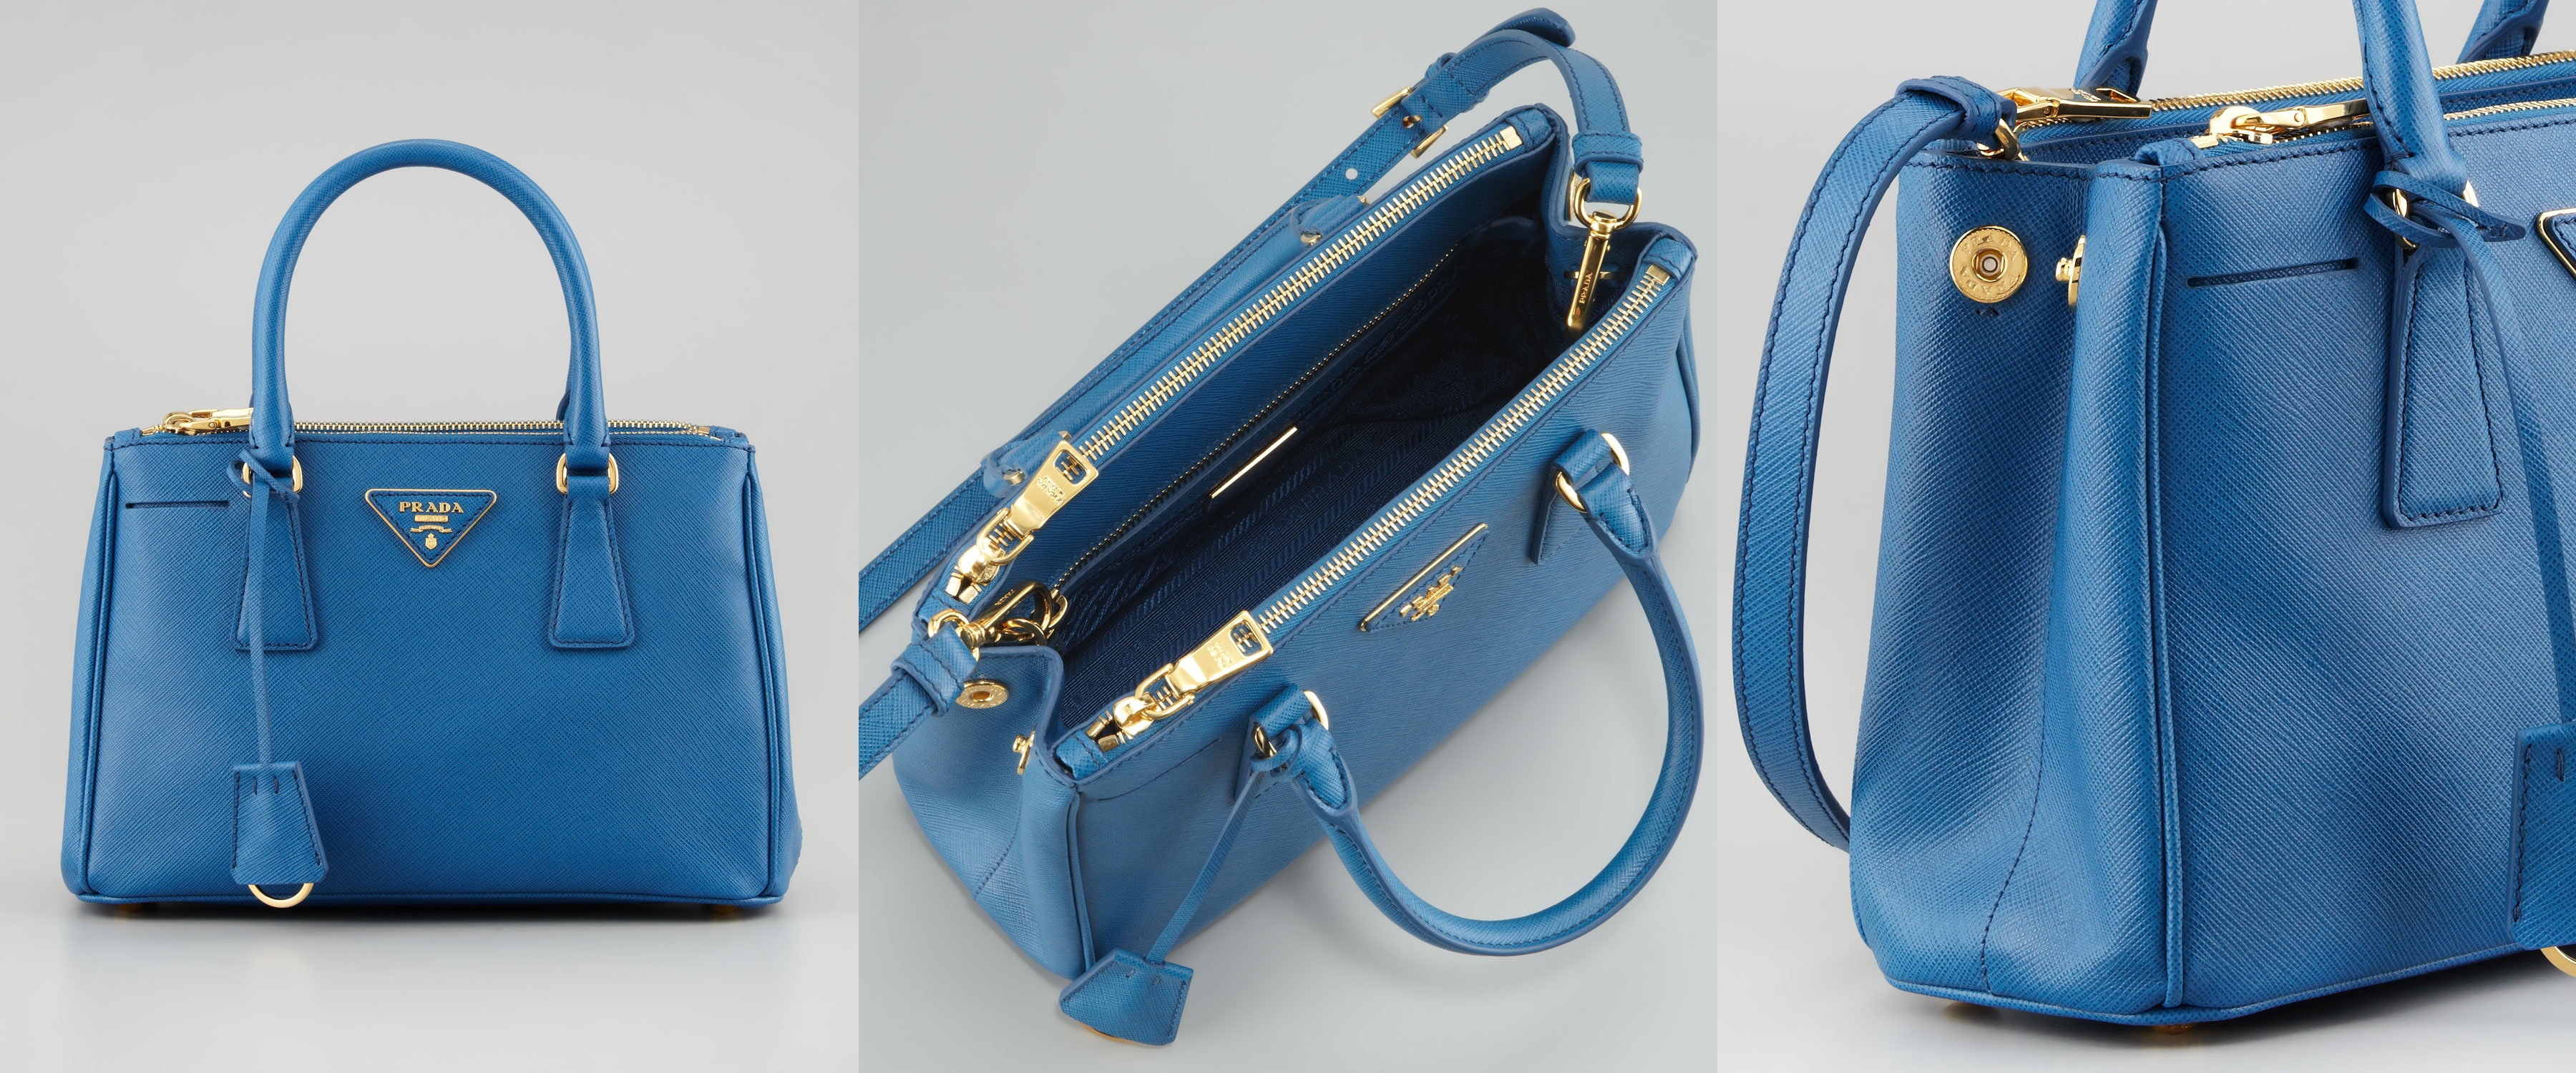 prada-blue-saffiano-small-executive-tote-blue-product-1-7755288-926540744-horz